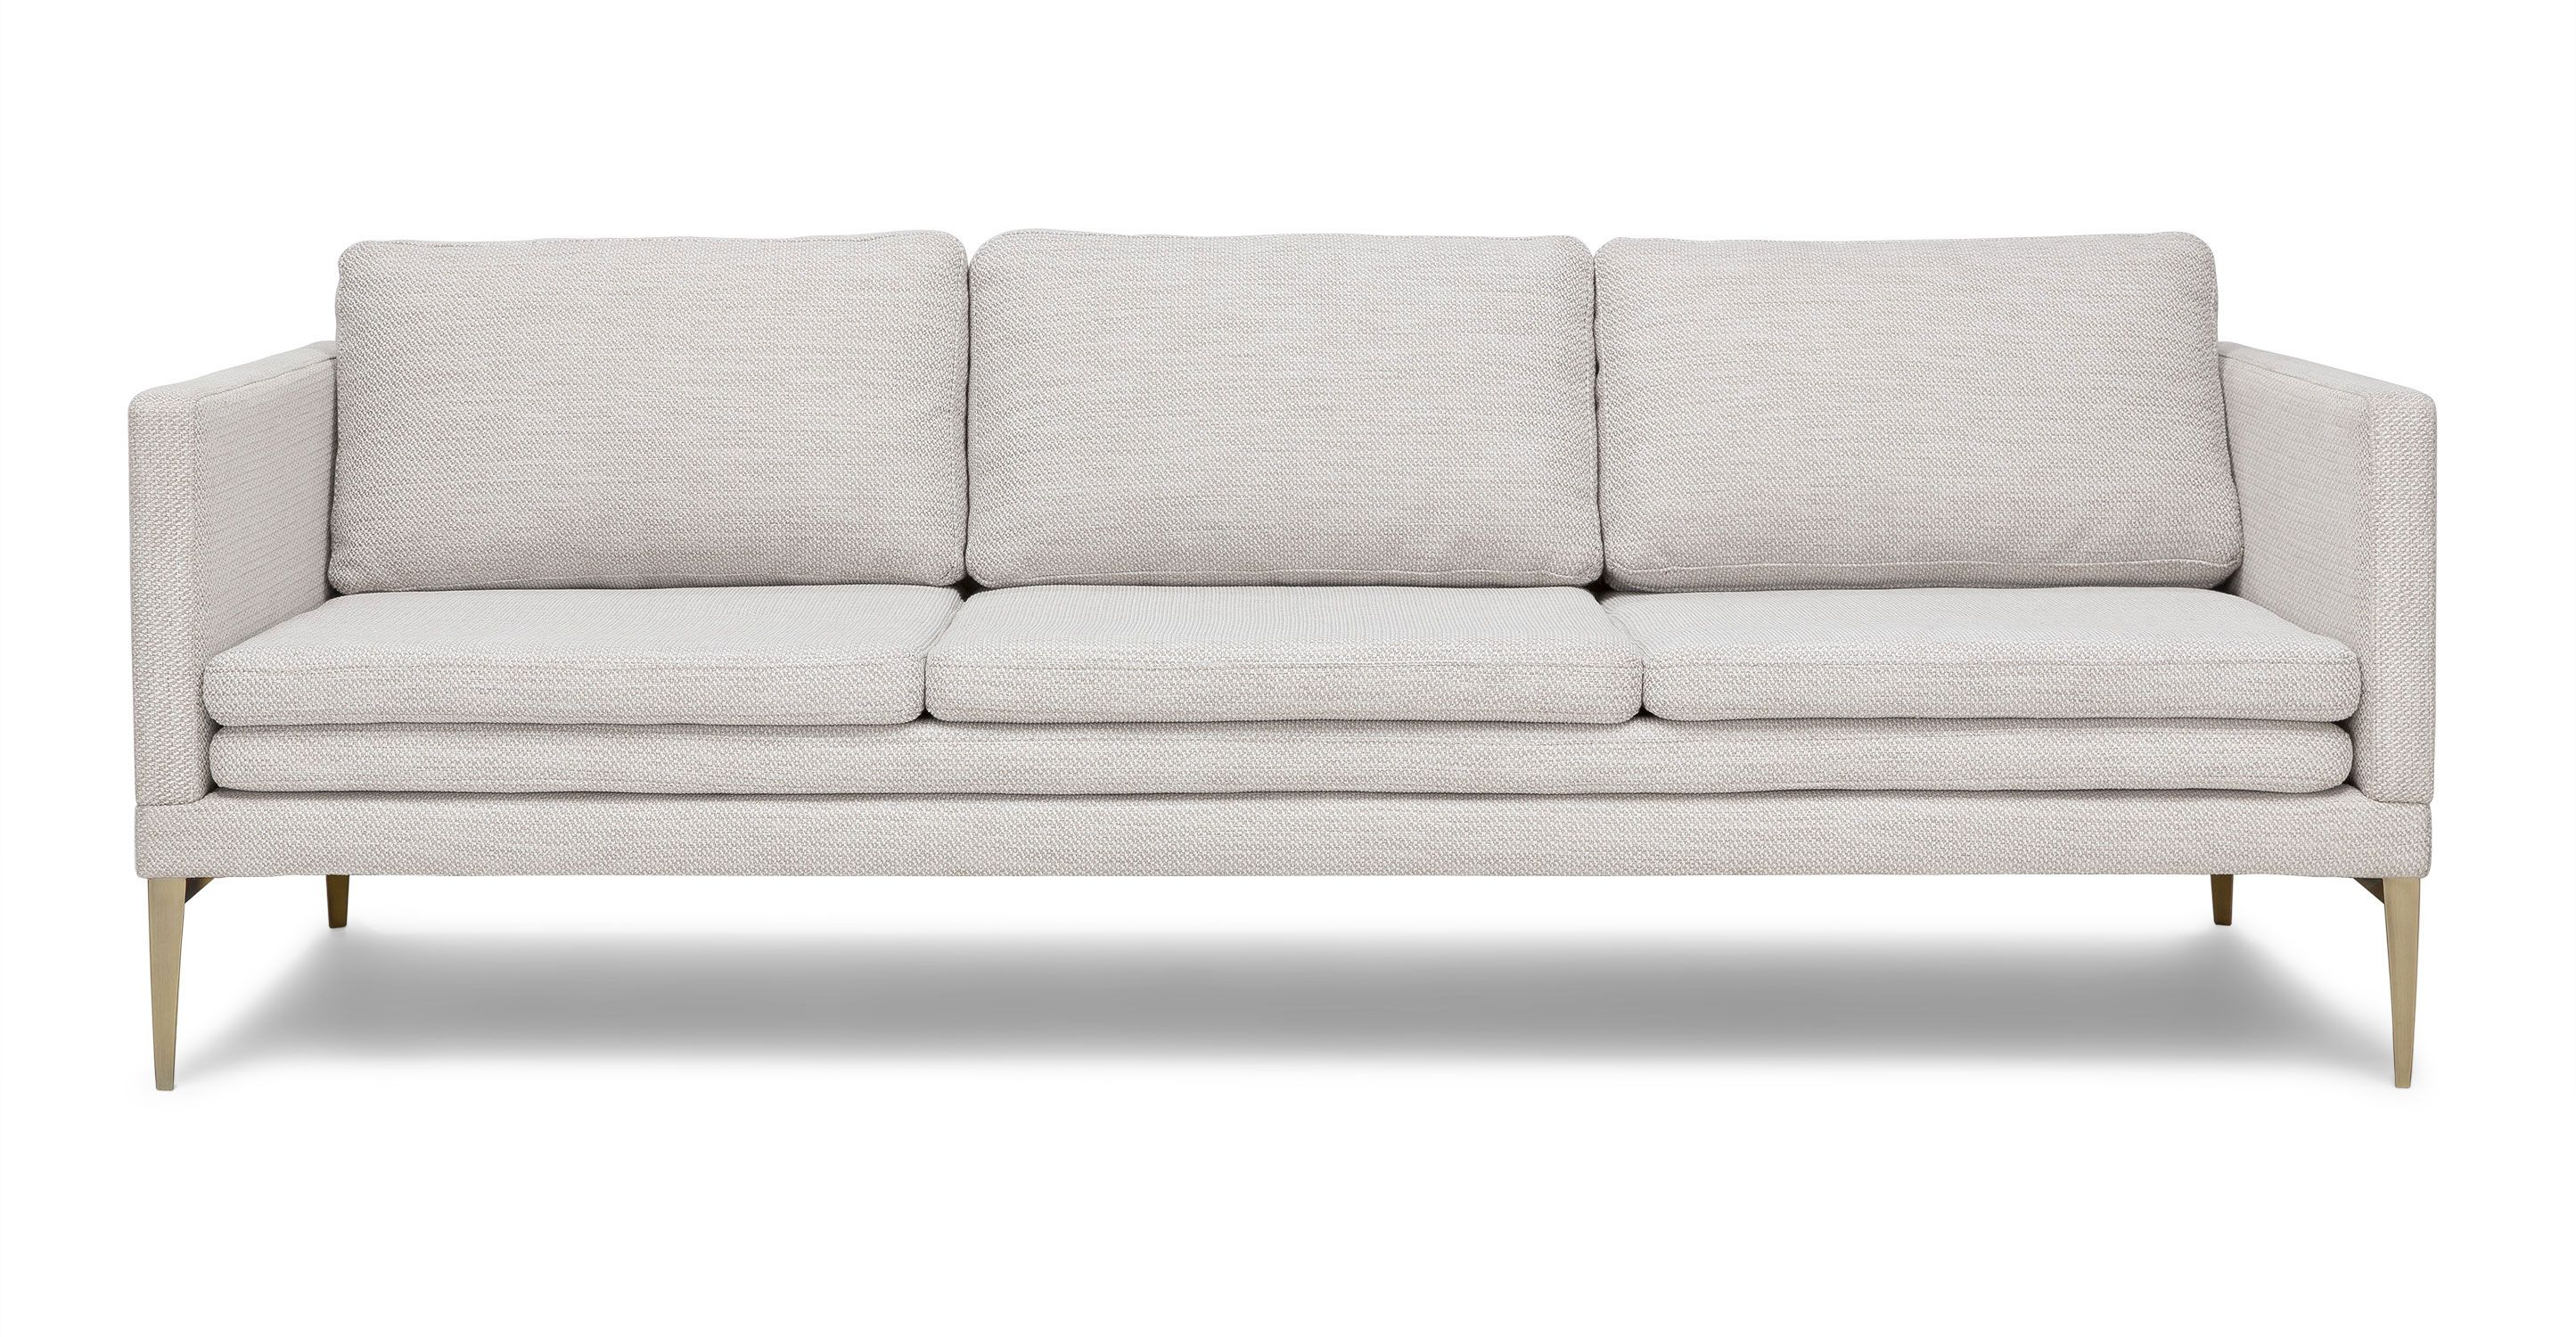 Ivory White Sofa With Metal Legs